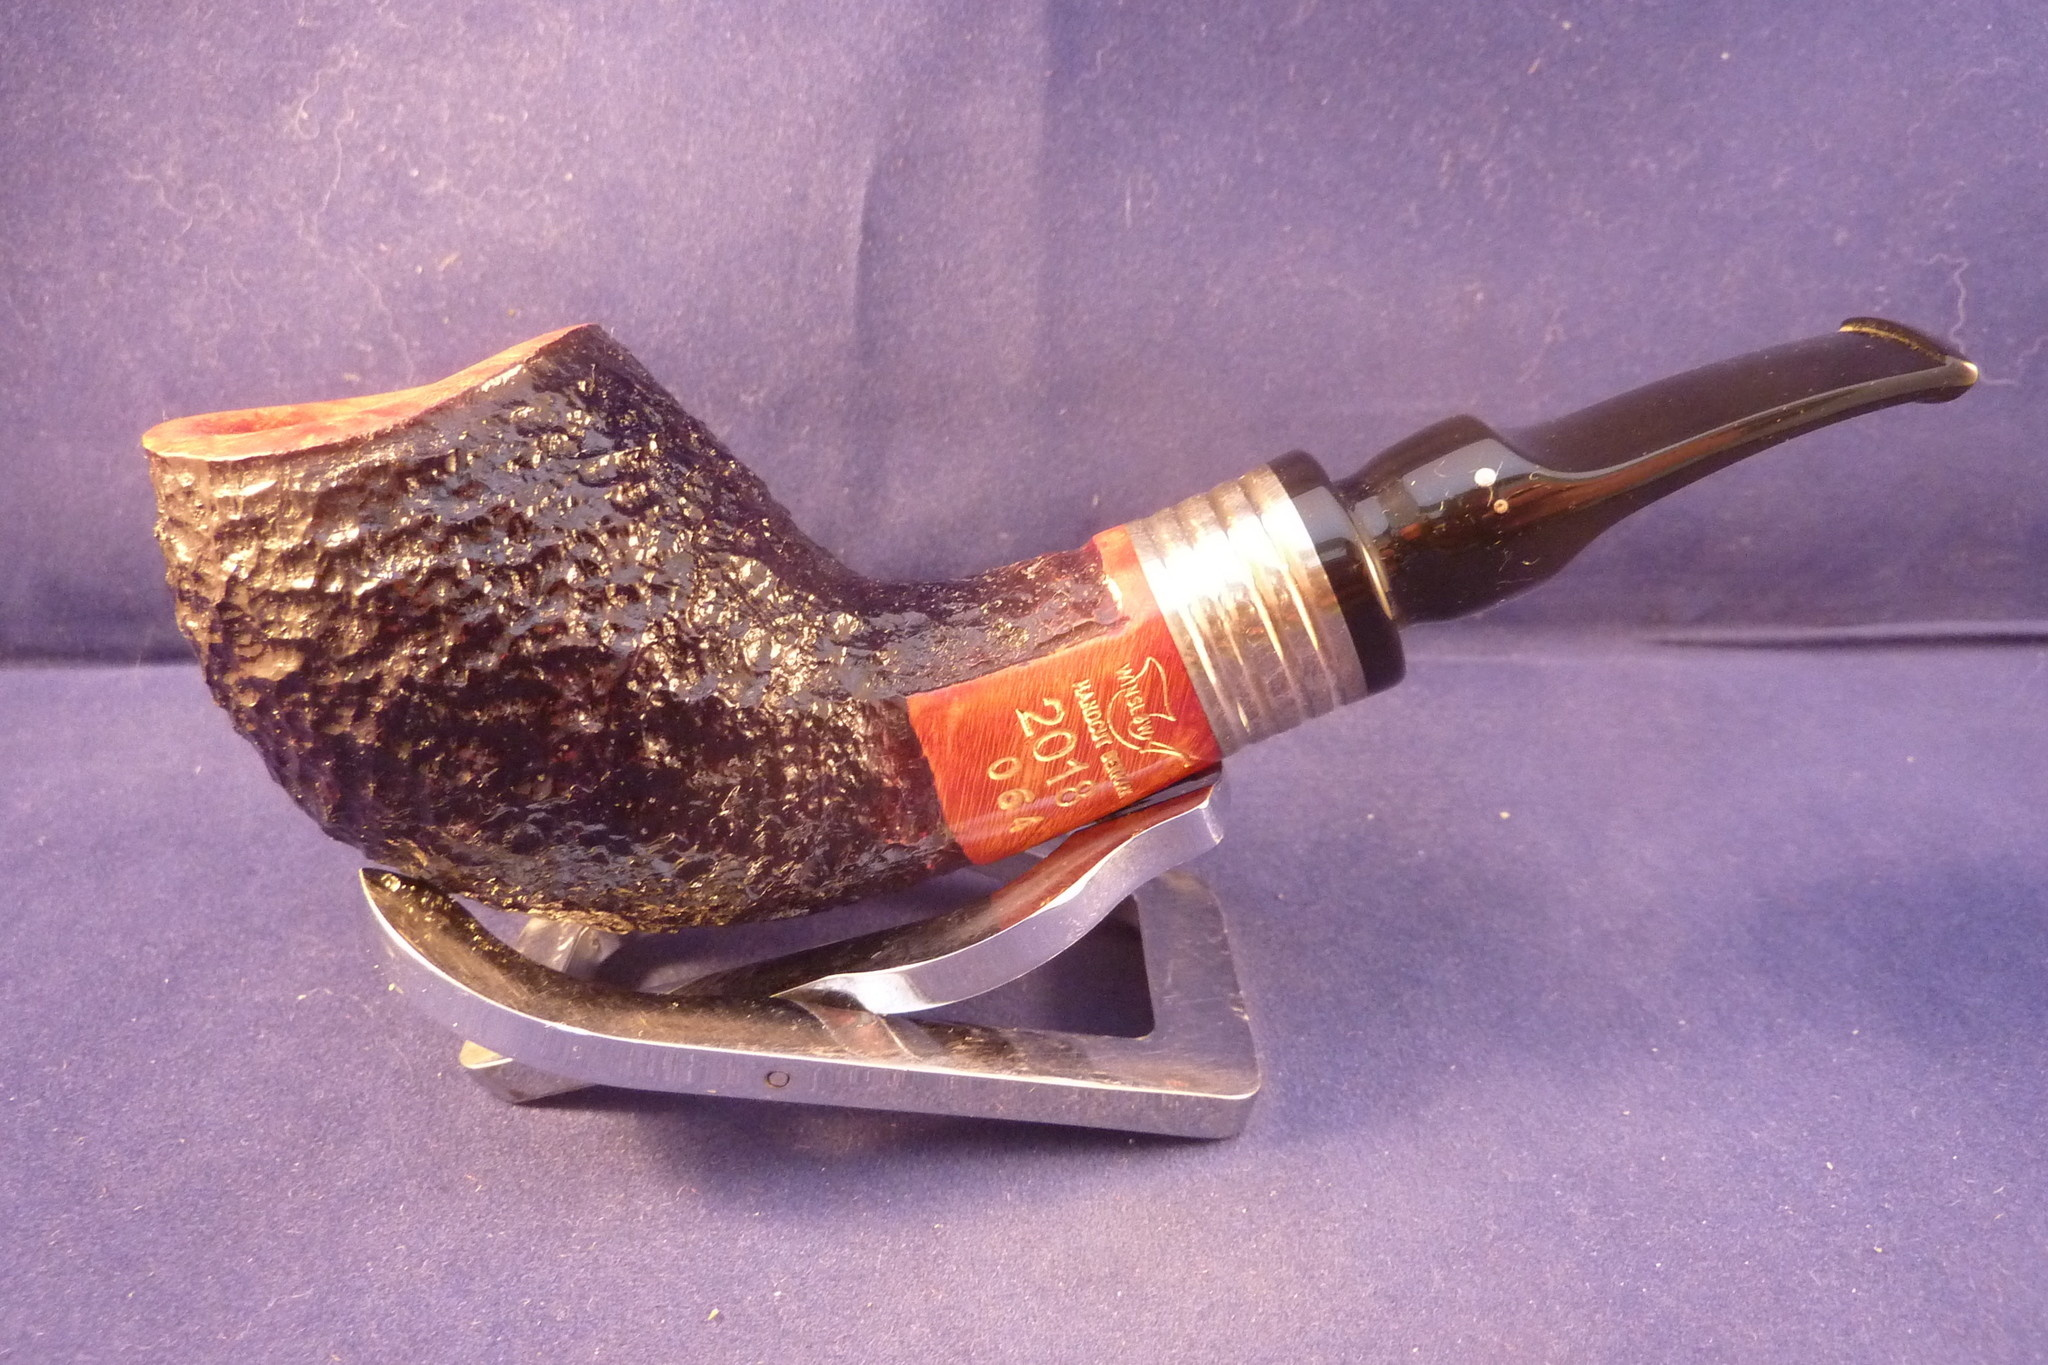 Sold Smoking Pipe Winslow Pipe of the Year 2018 Rustic